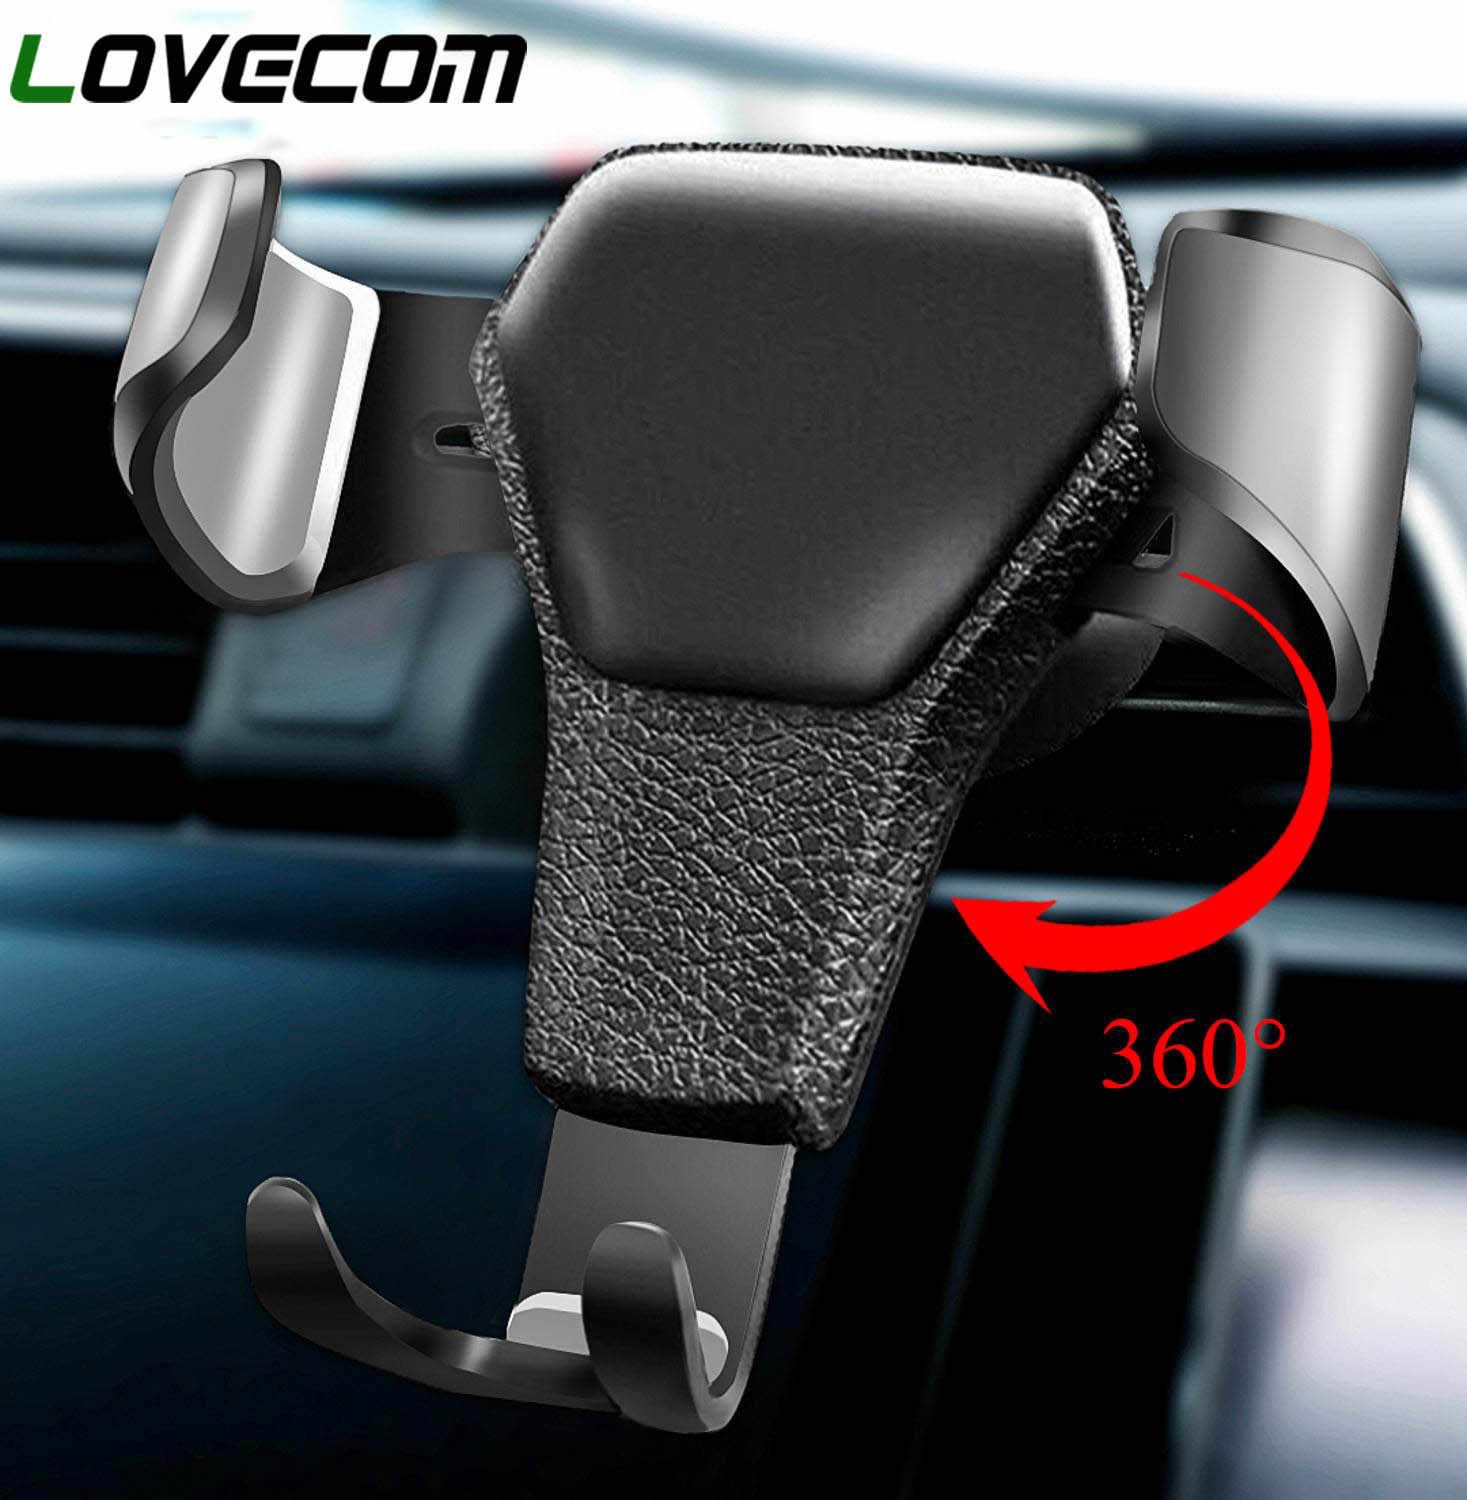 LOVECOM Universal Car Mobile Phone Car Holder Air Vent Mount Stand No Magnetic Cell Phone Holder For iPhone Phone In Car Bracket